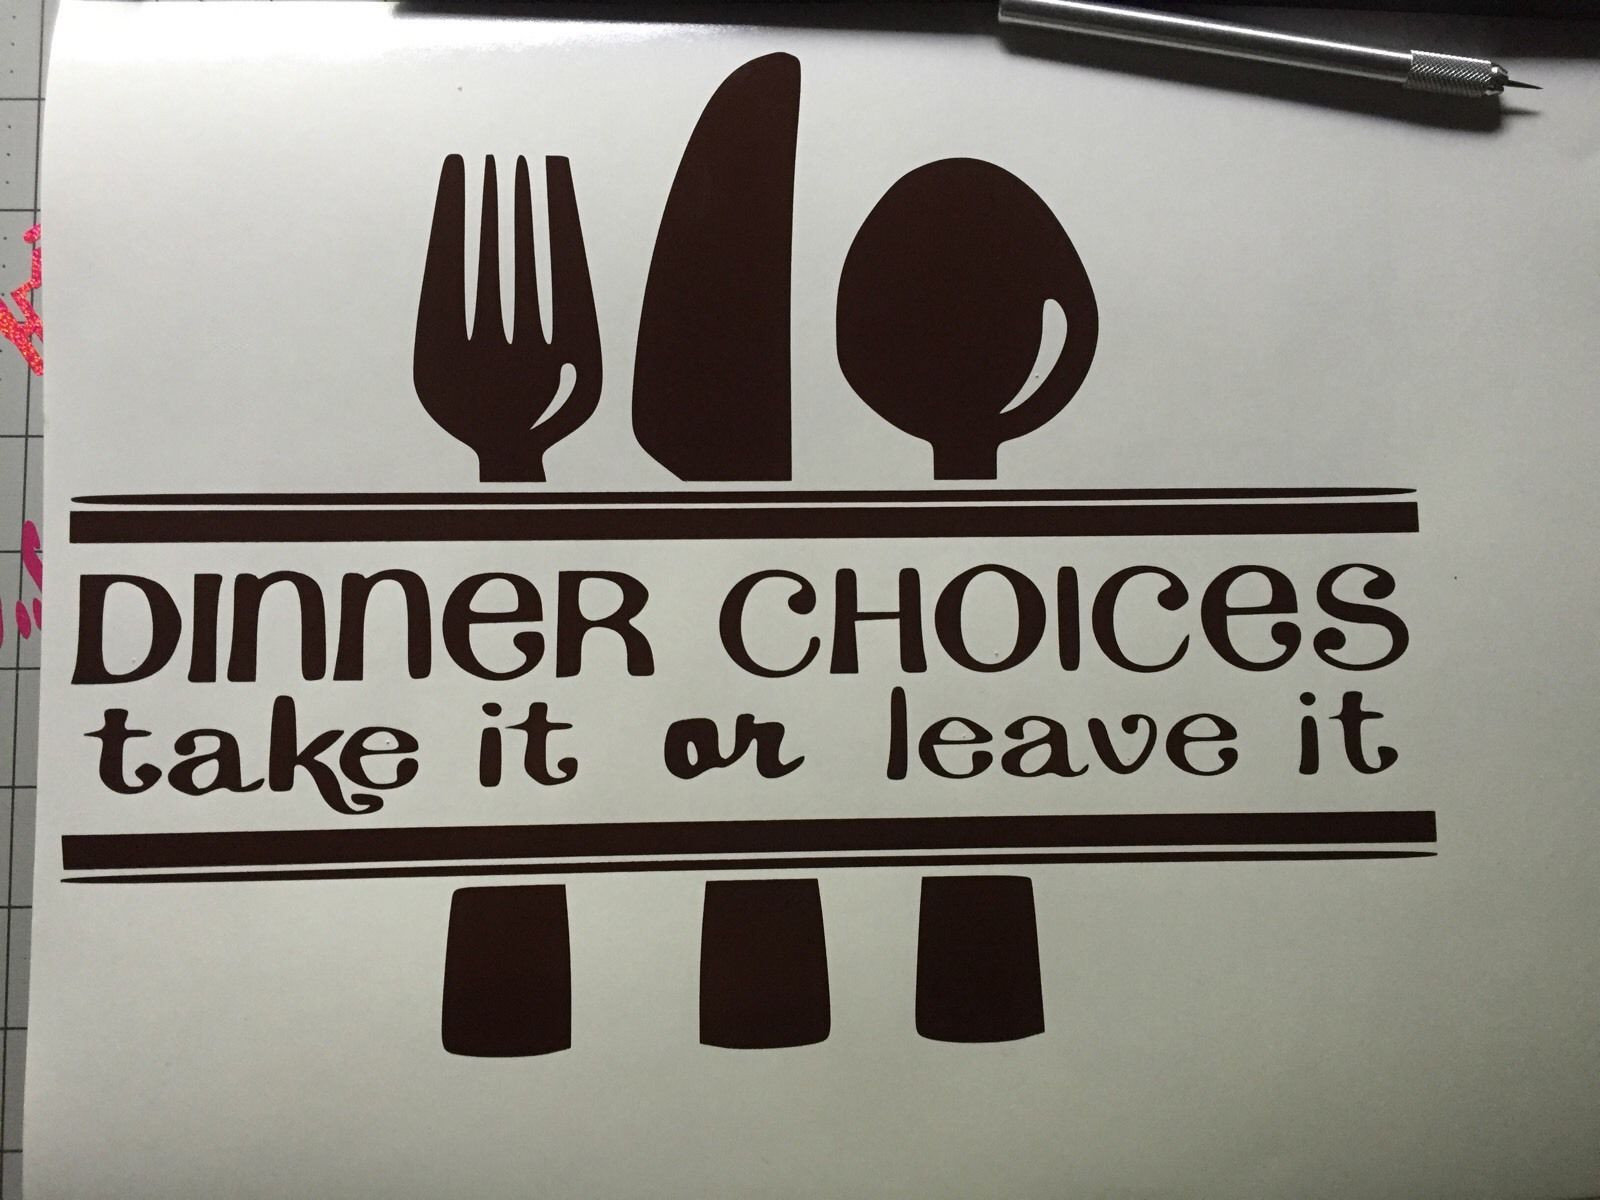 D481 Dinner Choices Take It Leave It Kitchen Wall Vinyl Decal Sticker(China (Mainland))